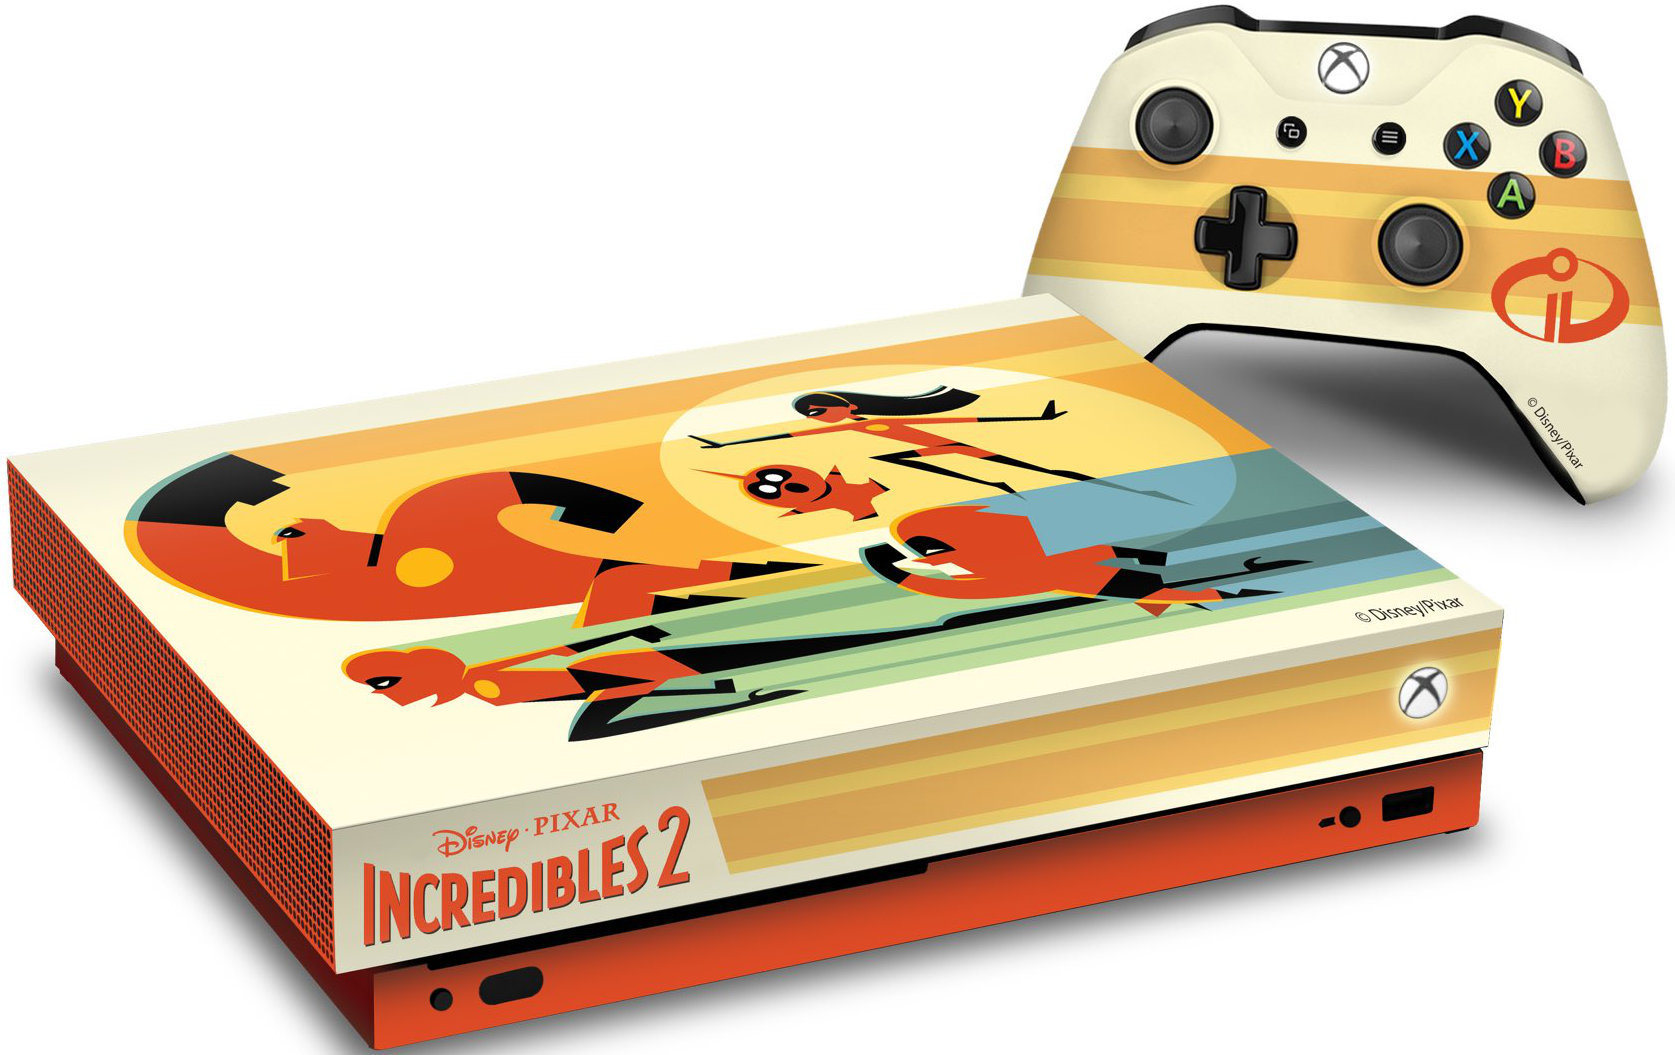 Quelle: Microsoft - Xbox One X Incredibles 2 Limited Edition